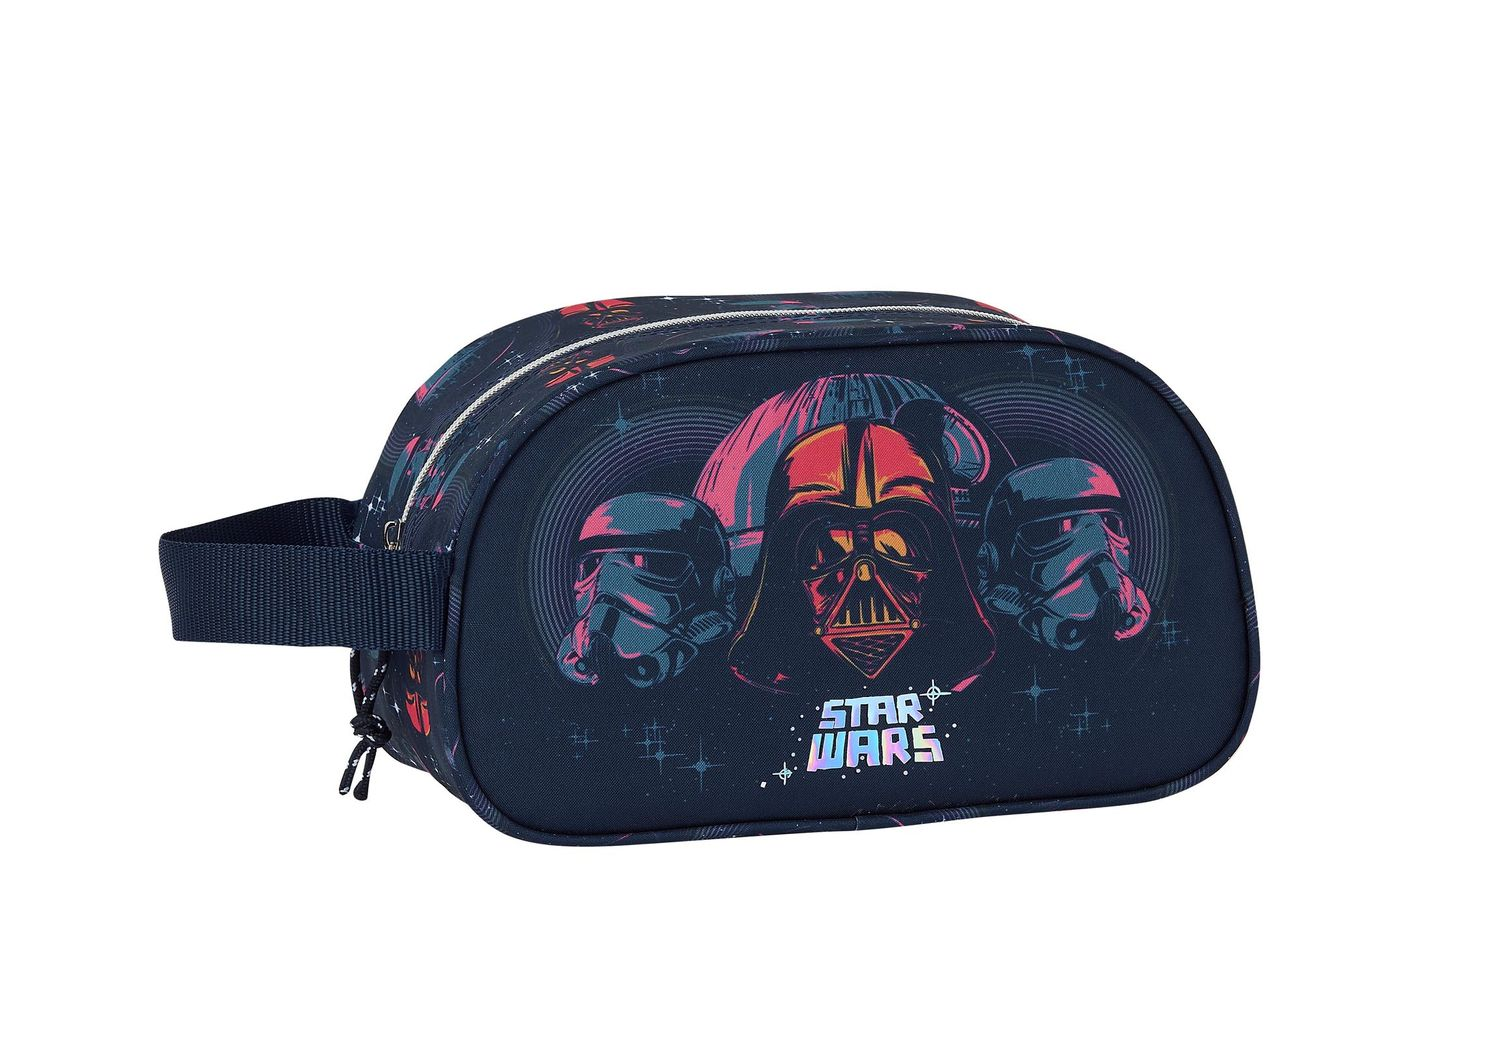 STAR WARS DEATH STAR Toiletry Travel Bag – image 1